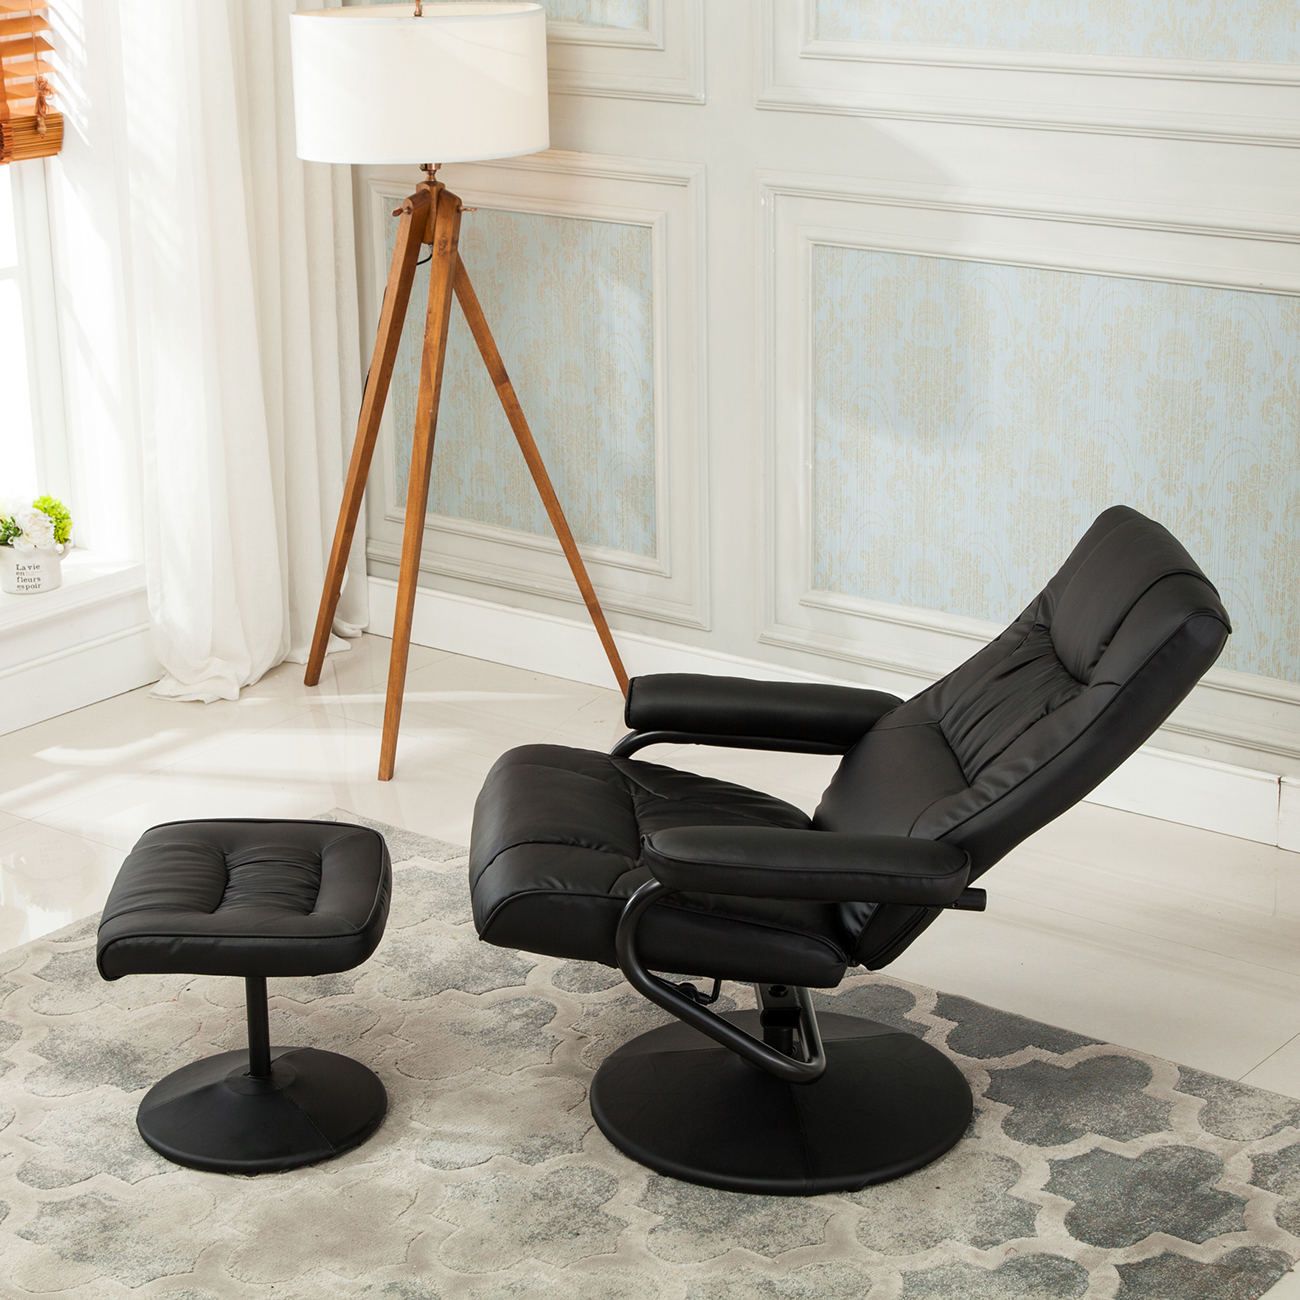 chair stool with footrest desk exercise ball size recliner swivel armchair lounge seat w